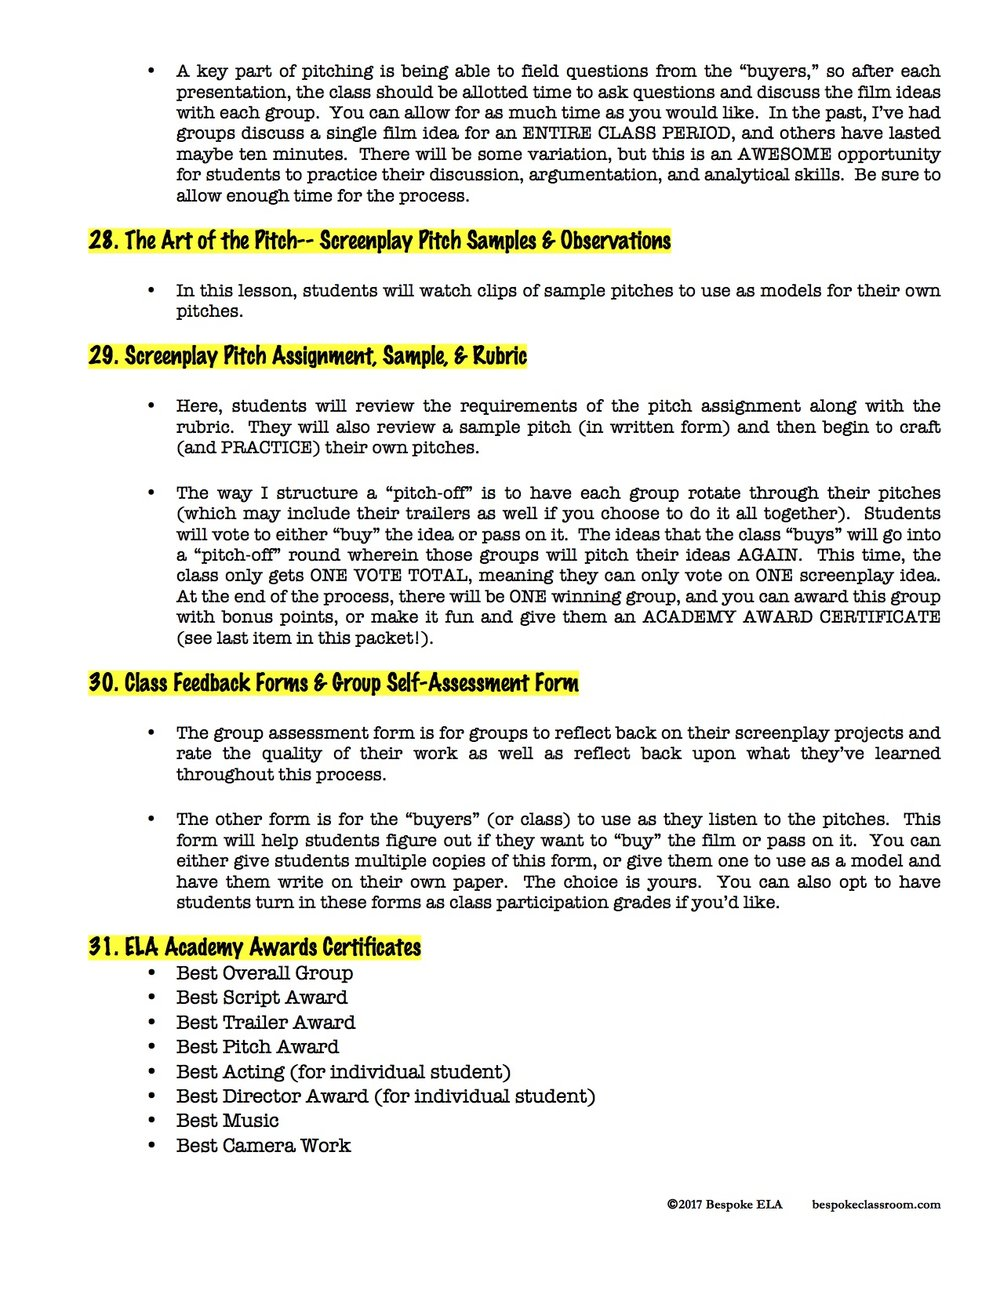 00 Table of Contents and Instructions-- Screenplay Unit by BESPOKE ELA 4.jpg